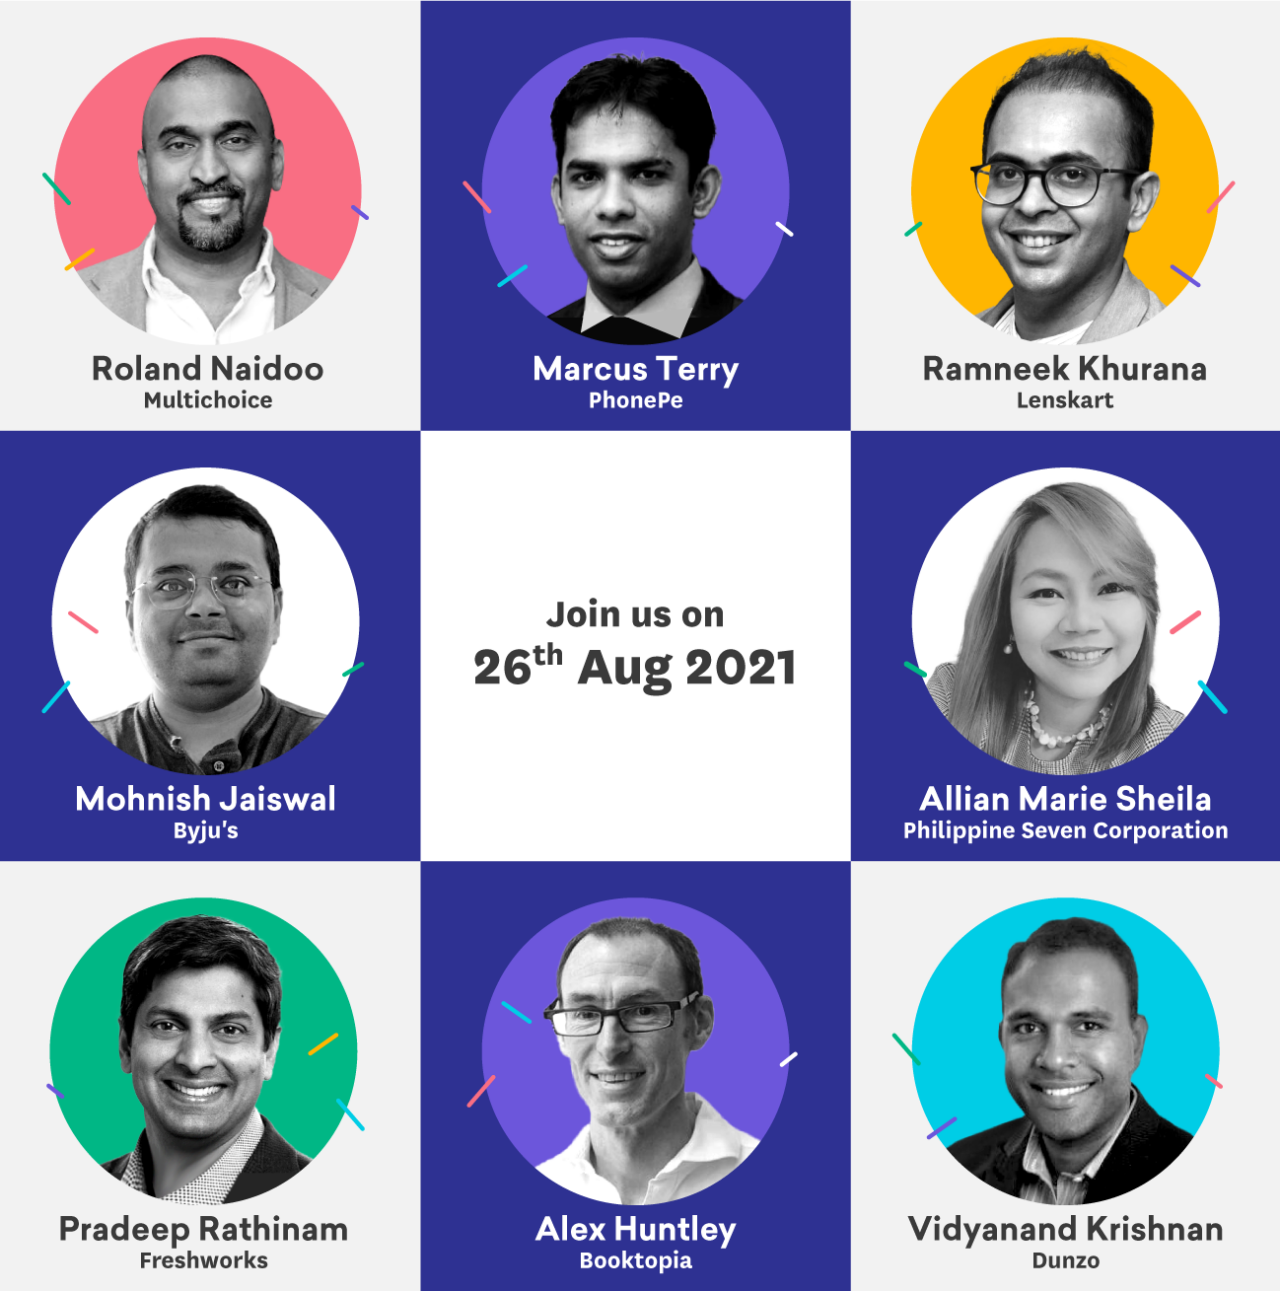 A photo shows speakers at the summit who will talk about the digital-first CX.